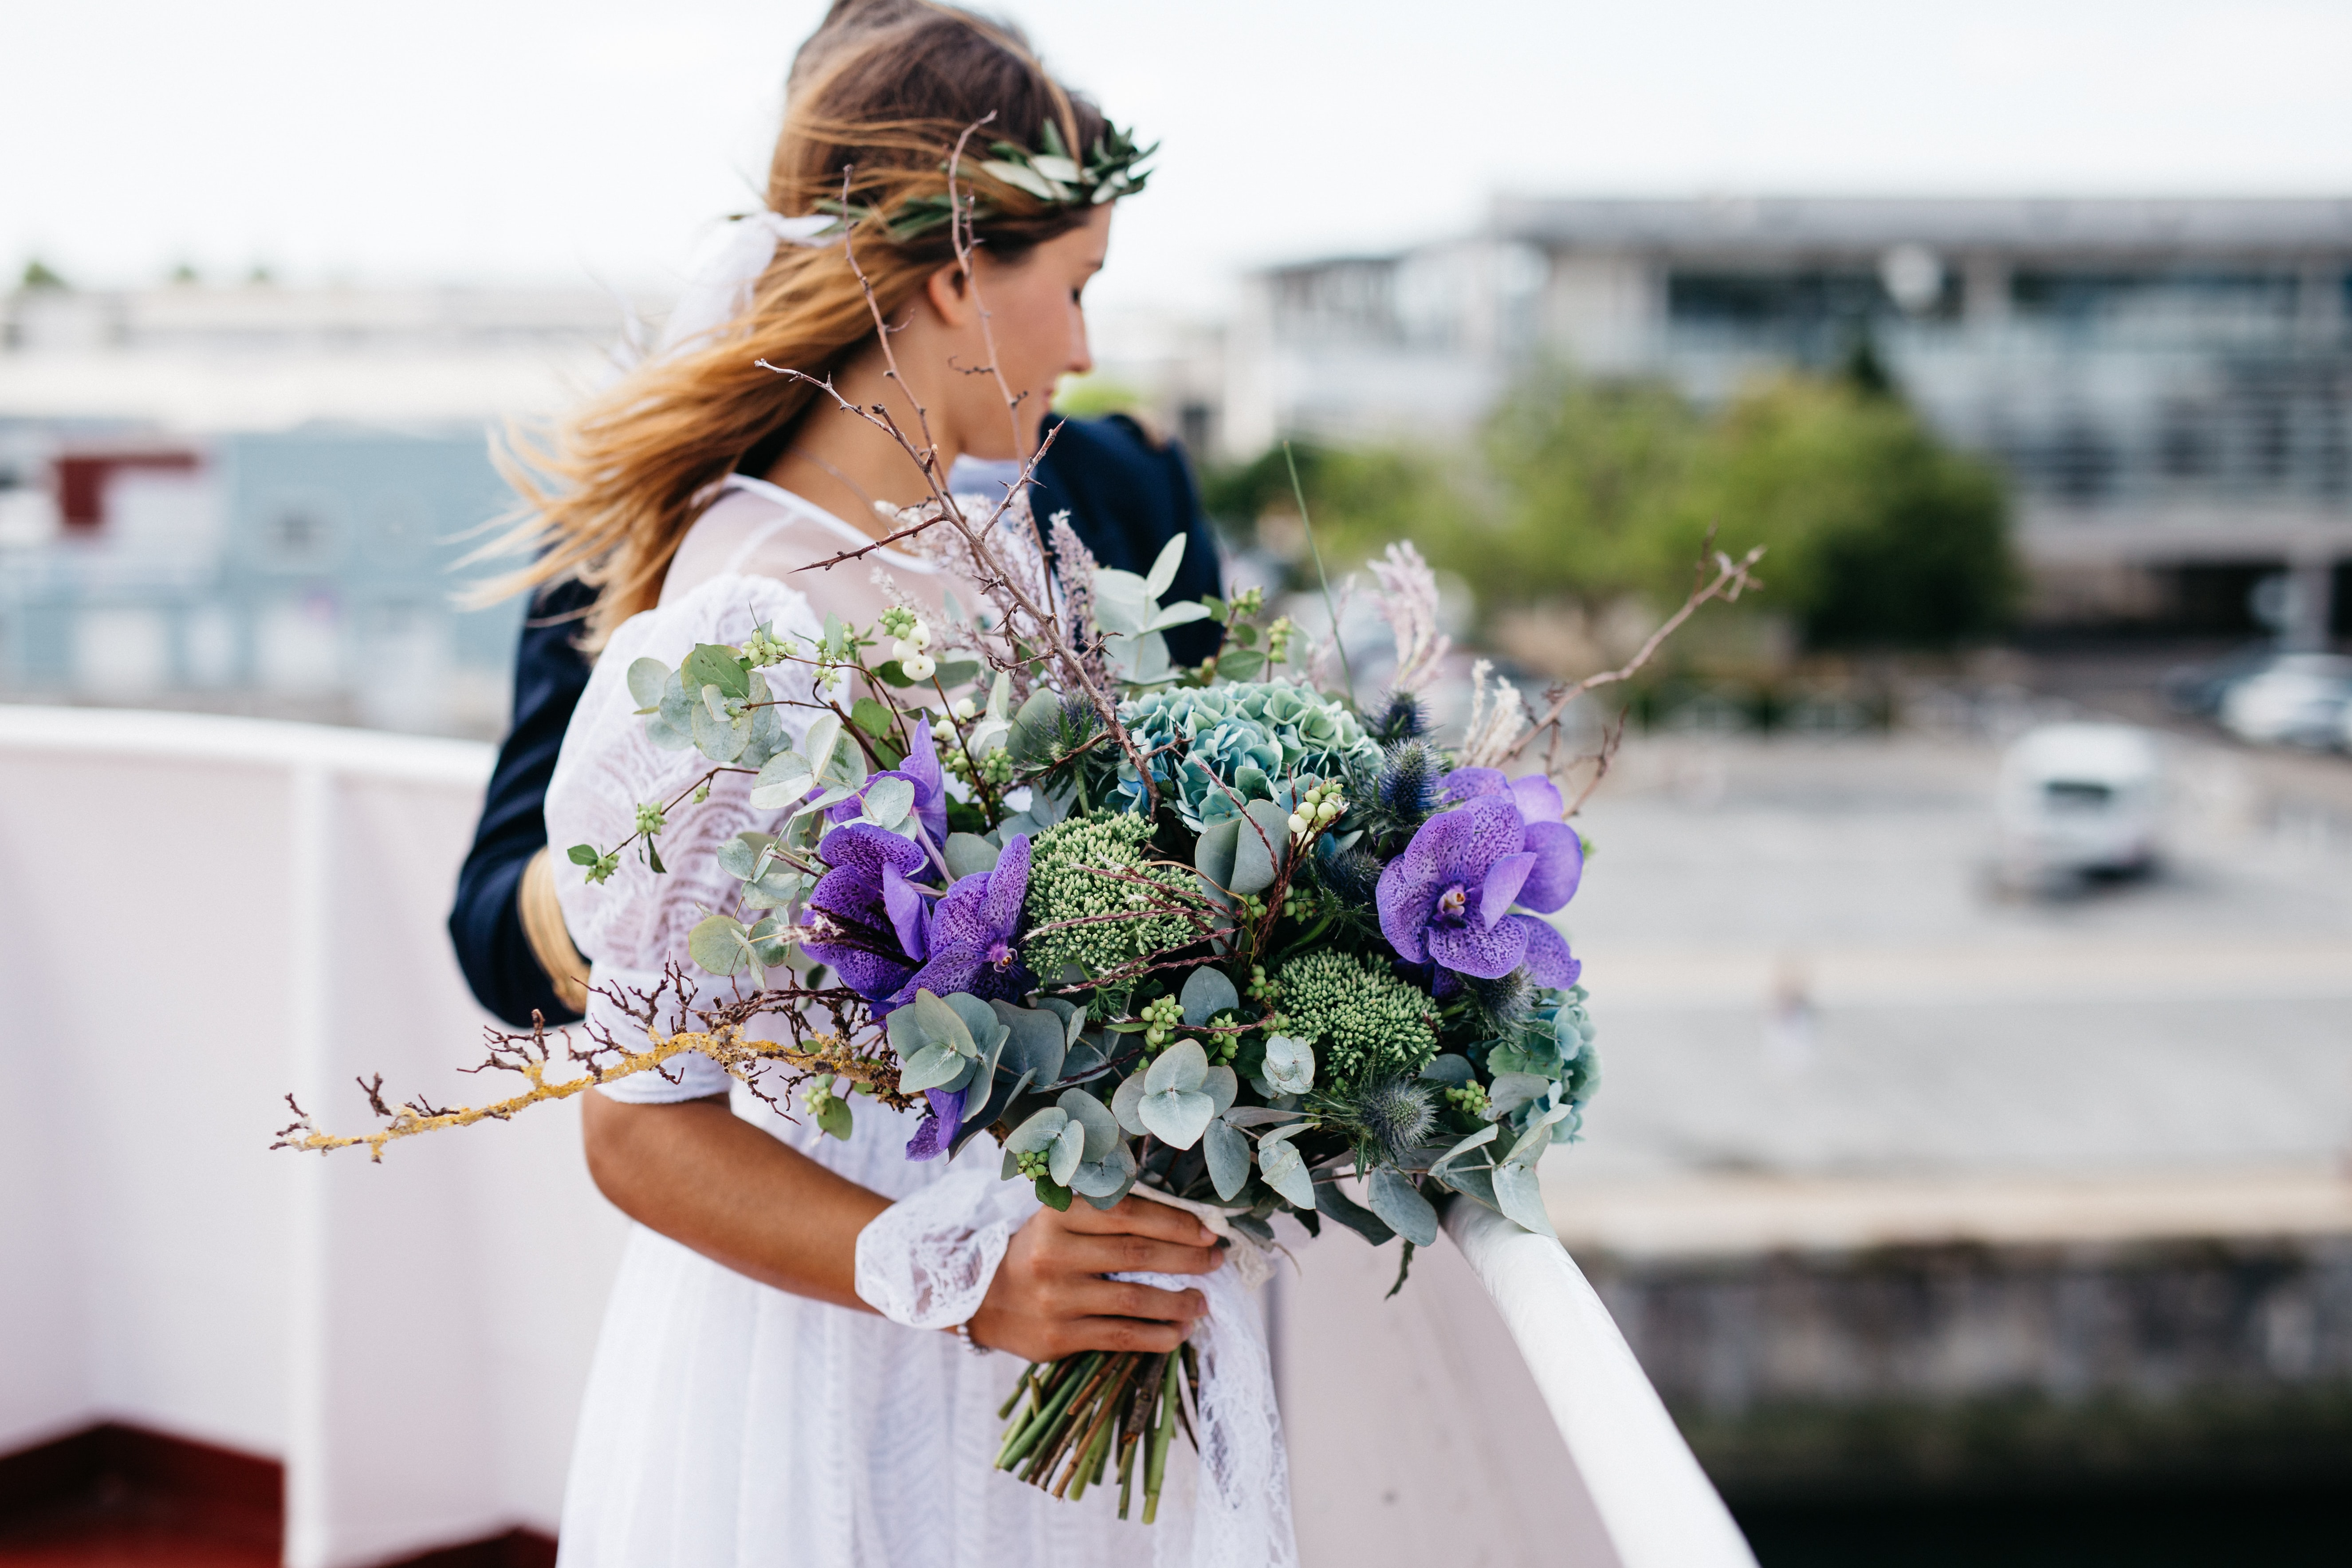 Just-married couple at an overlook in Musée Maritime de La Rochelle with an ornate bouquet